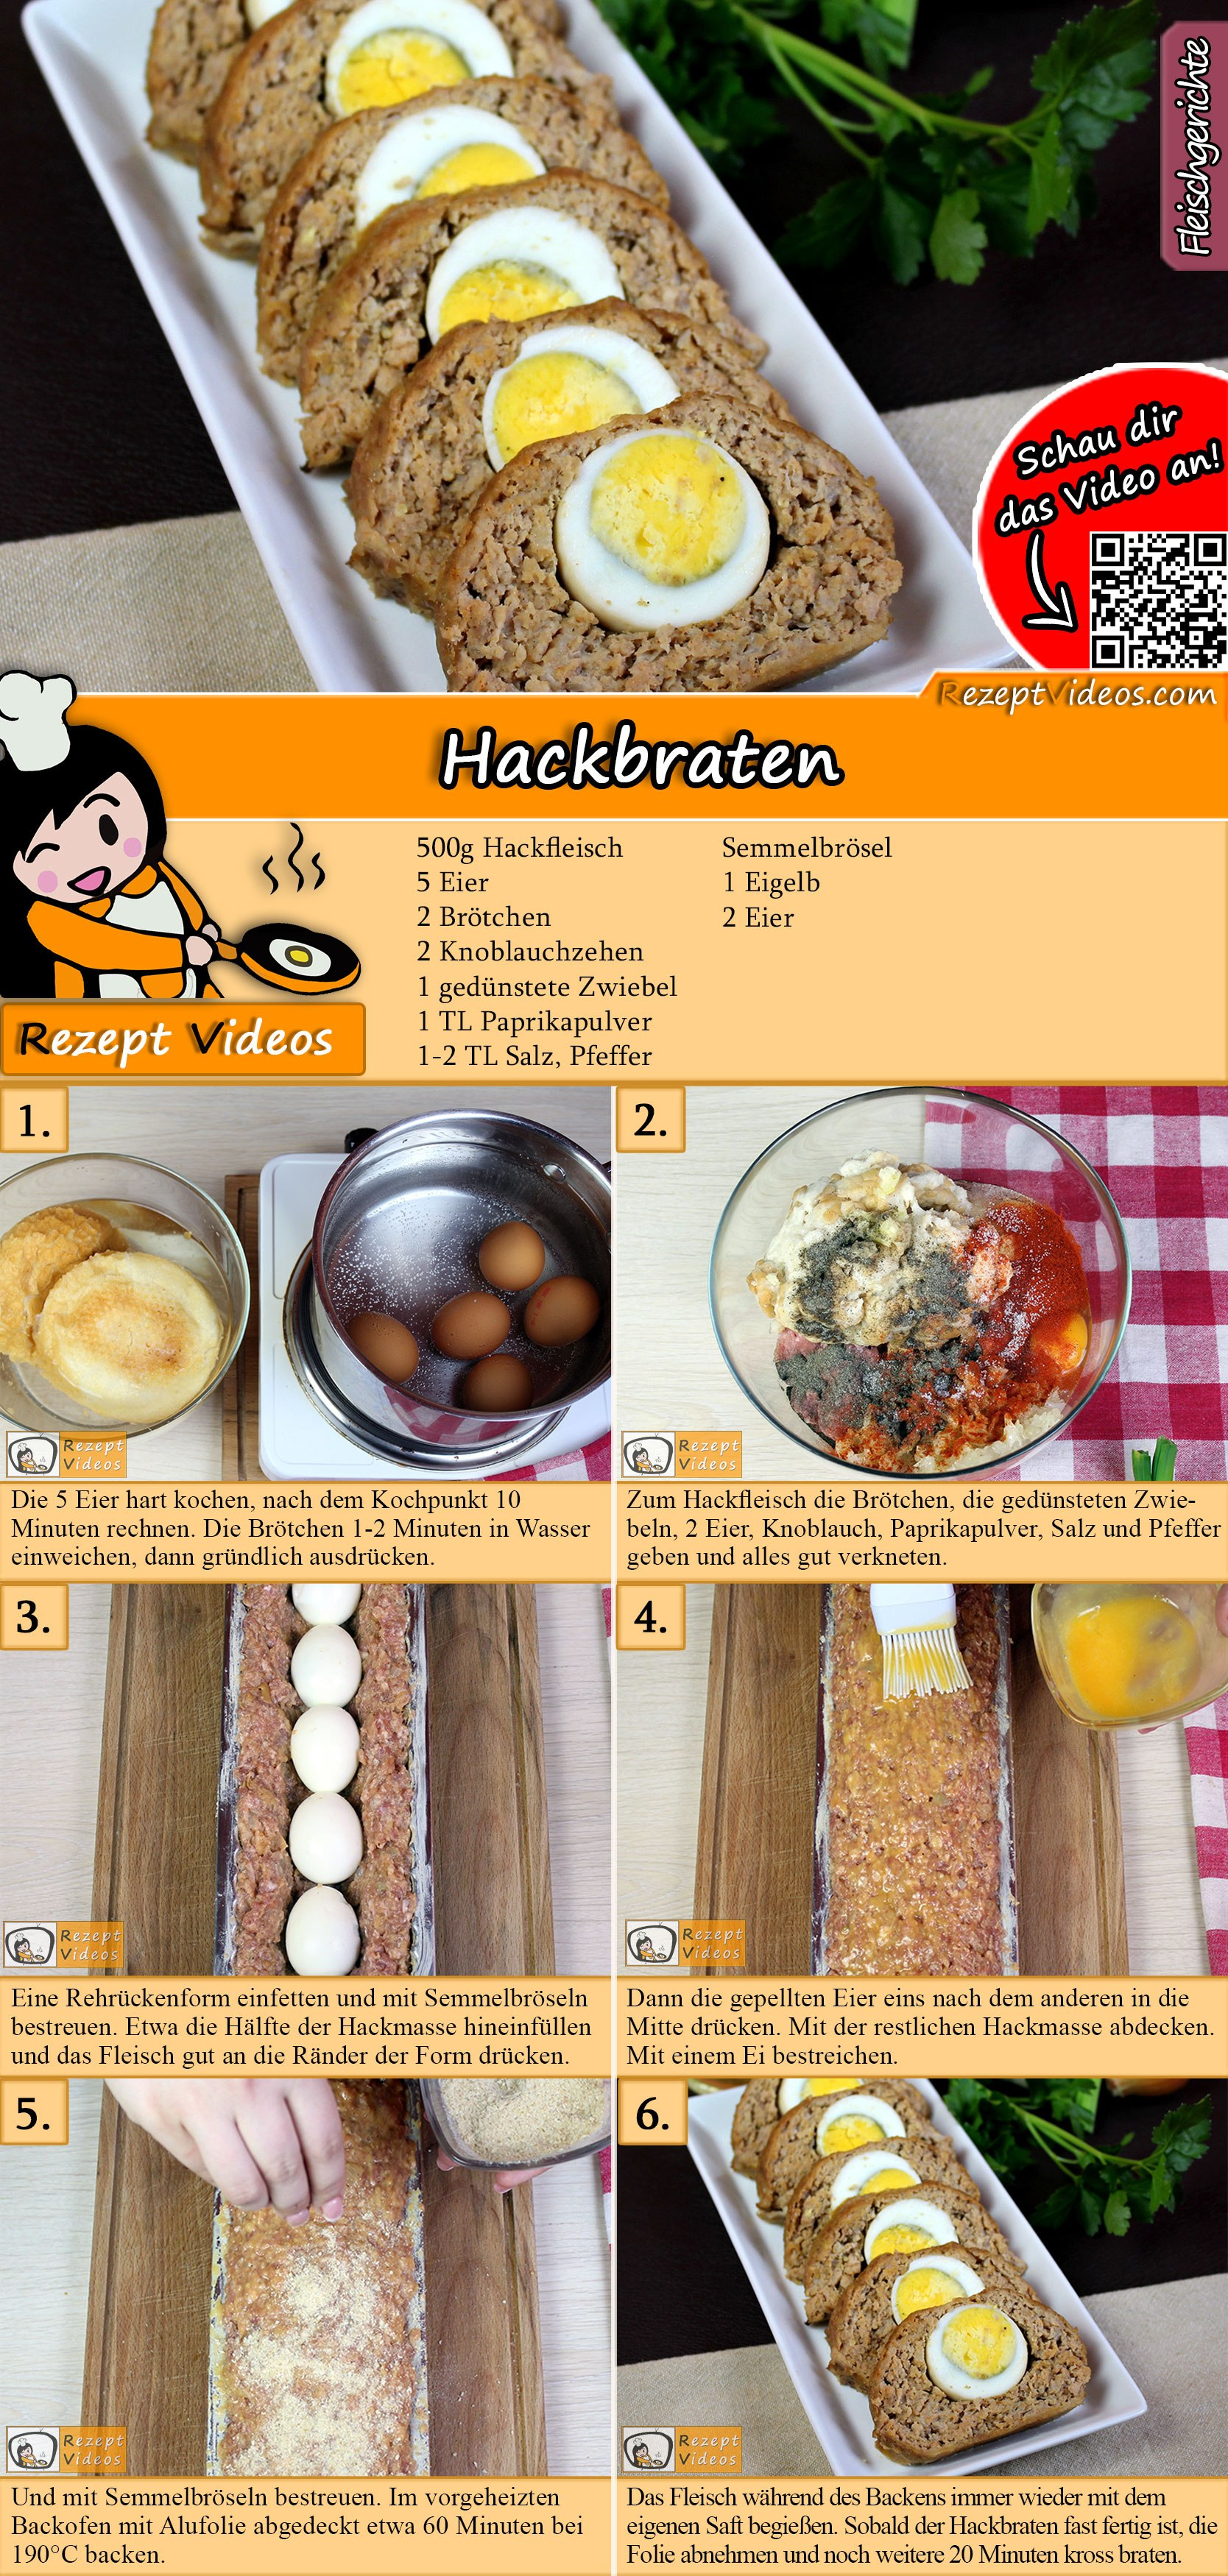 Hackbraten Rezept mit Video